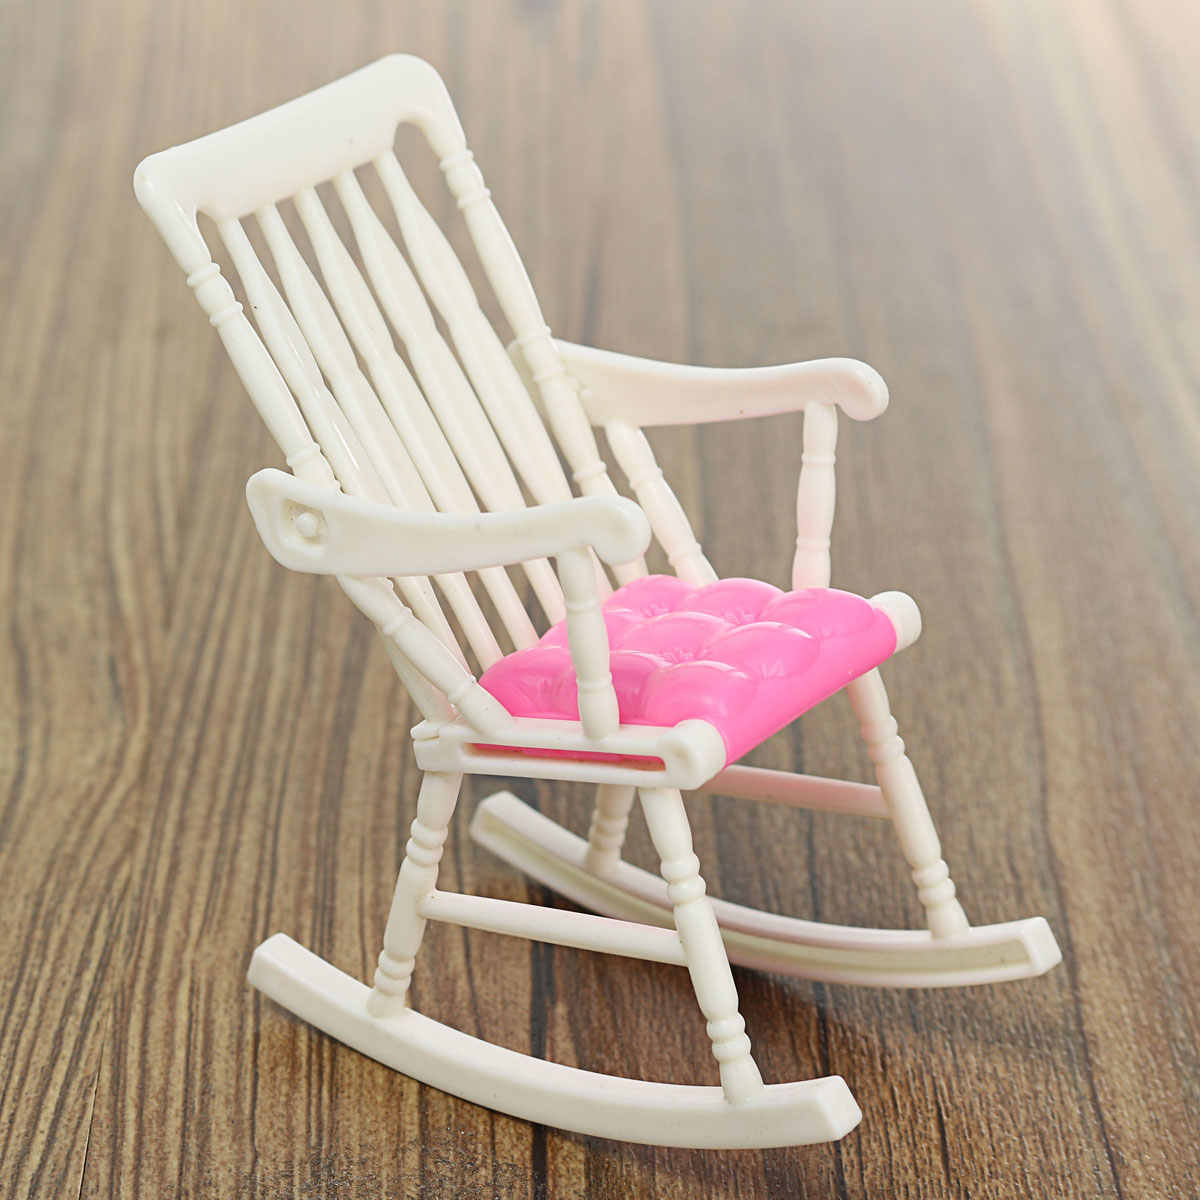 1PC Mini Doll Rocking Chair for Doll House Accessories Furniture Dollhouse Room Decoration Children Girls Toy Gift